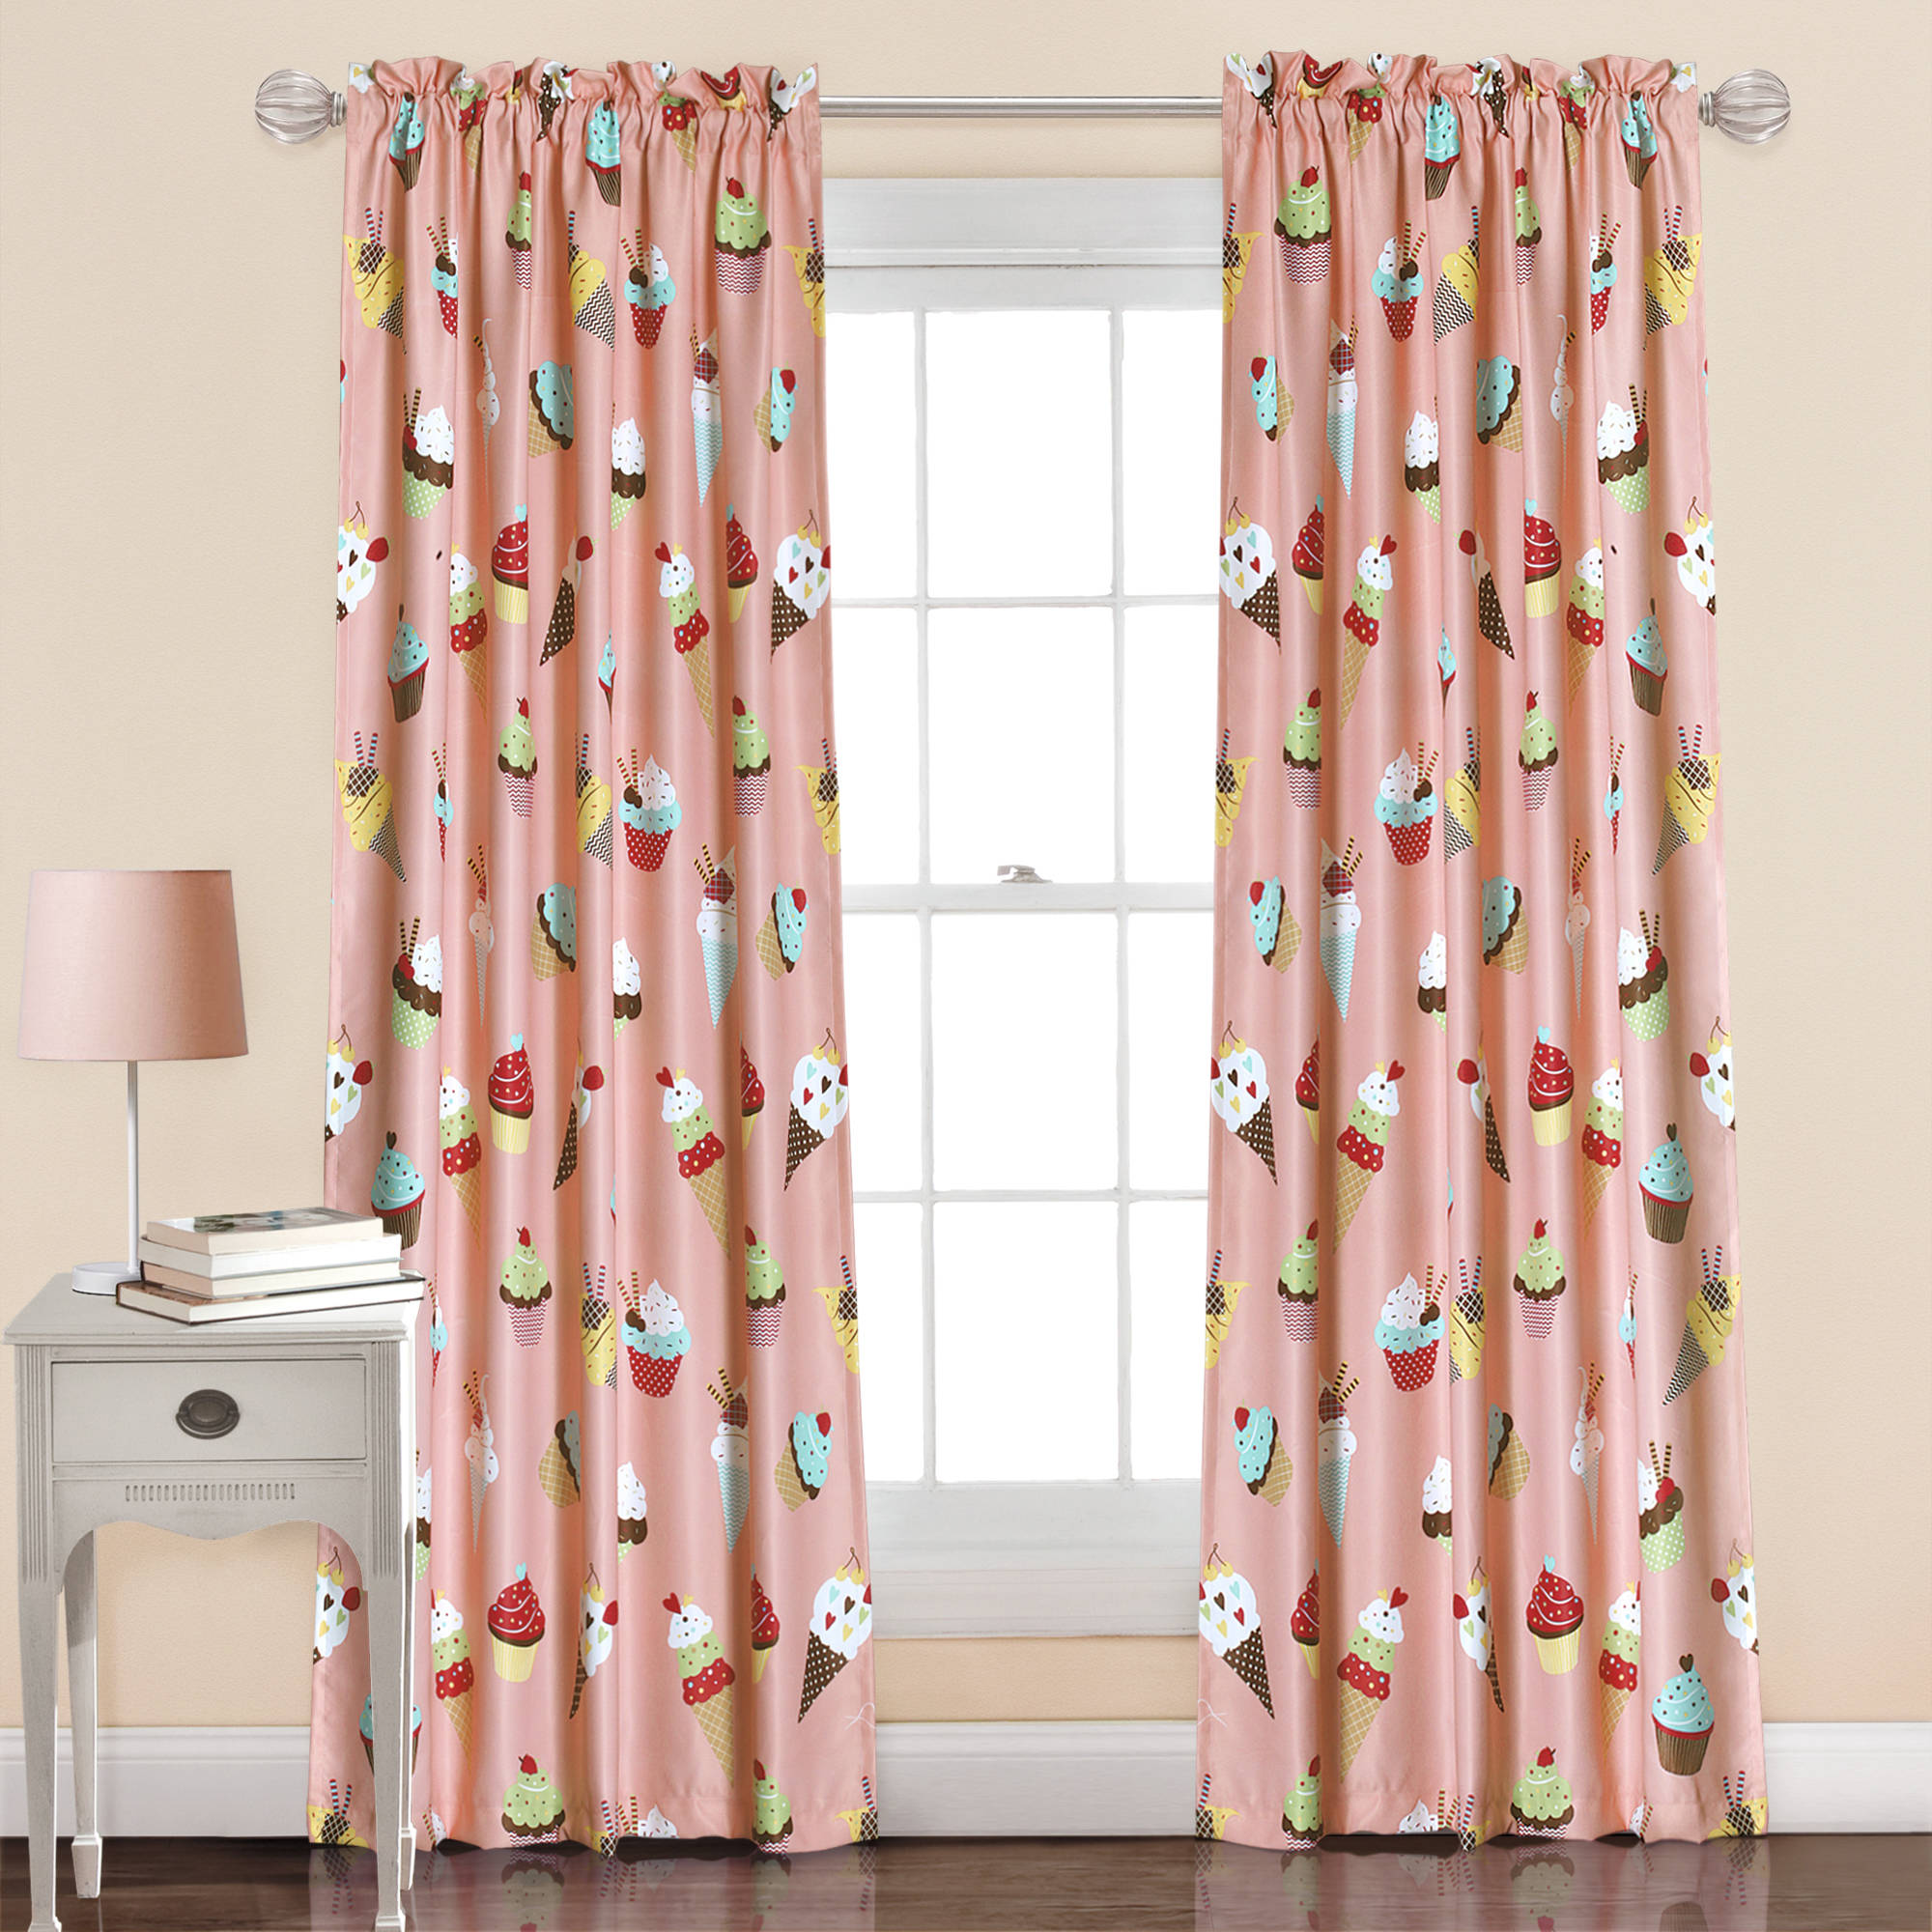 Cupcake Ice Cream Window Curtain Set, Pink